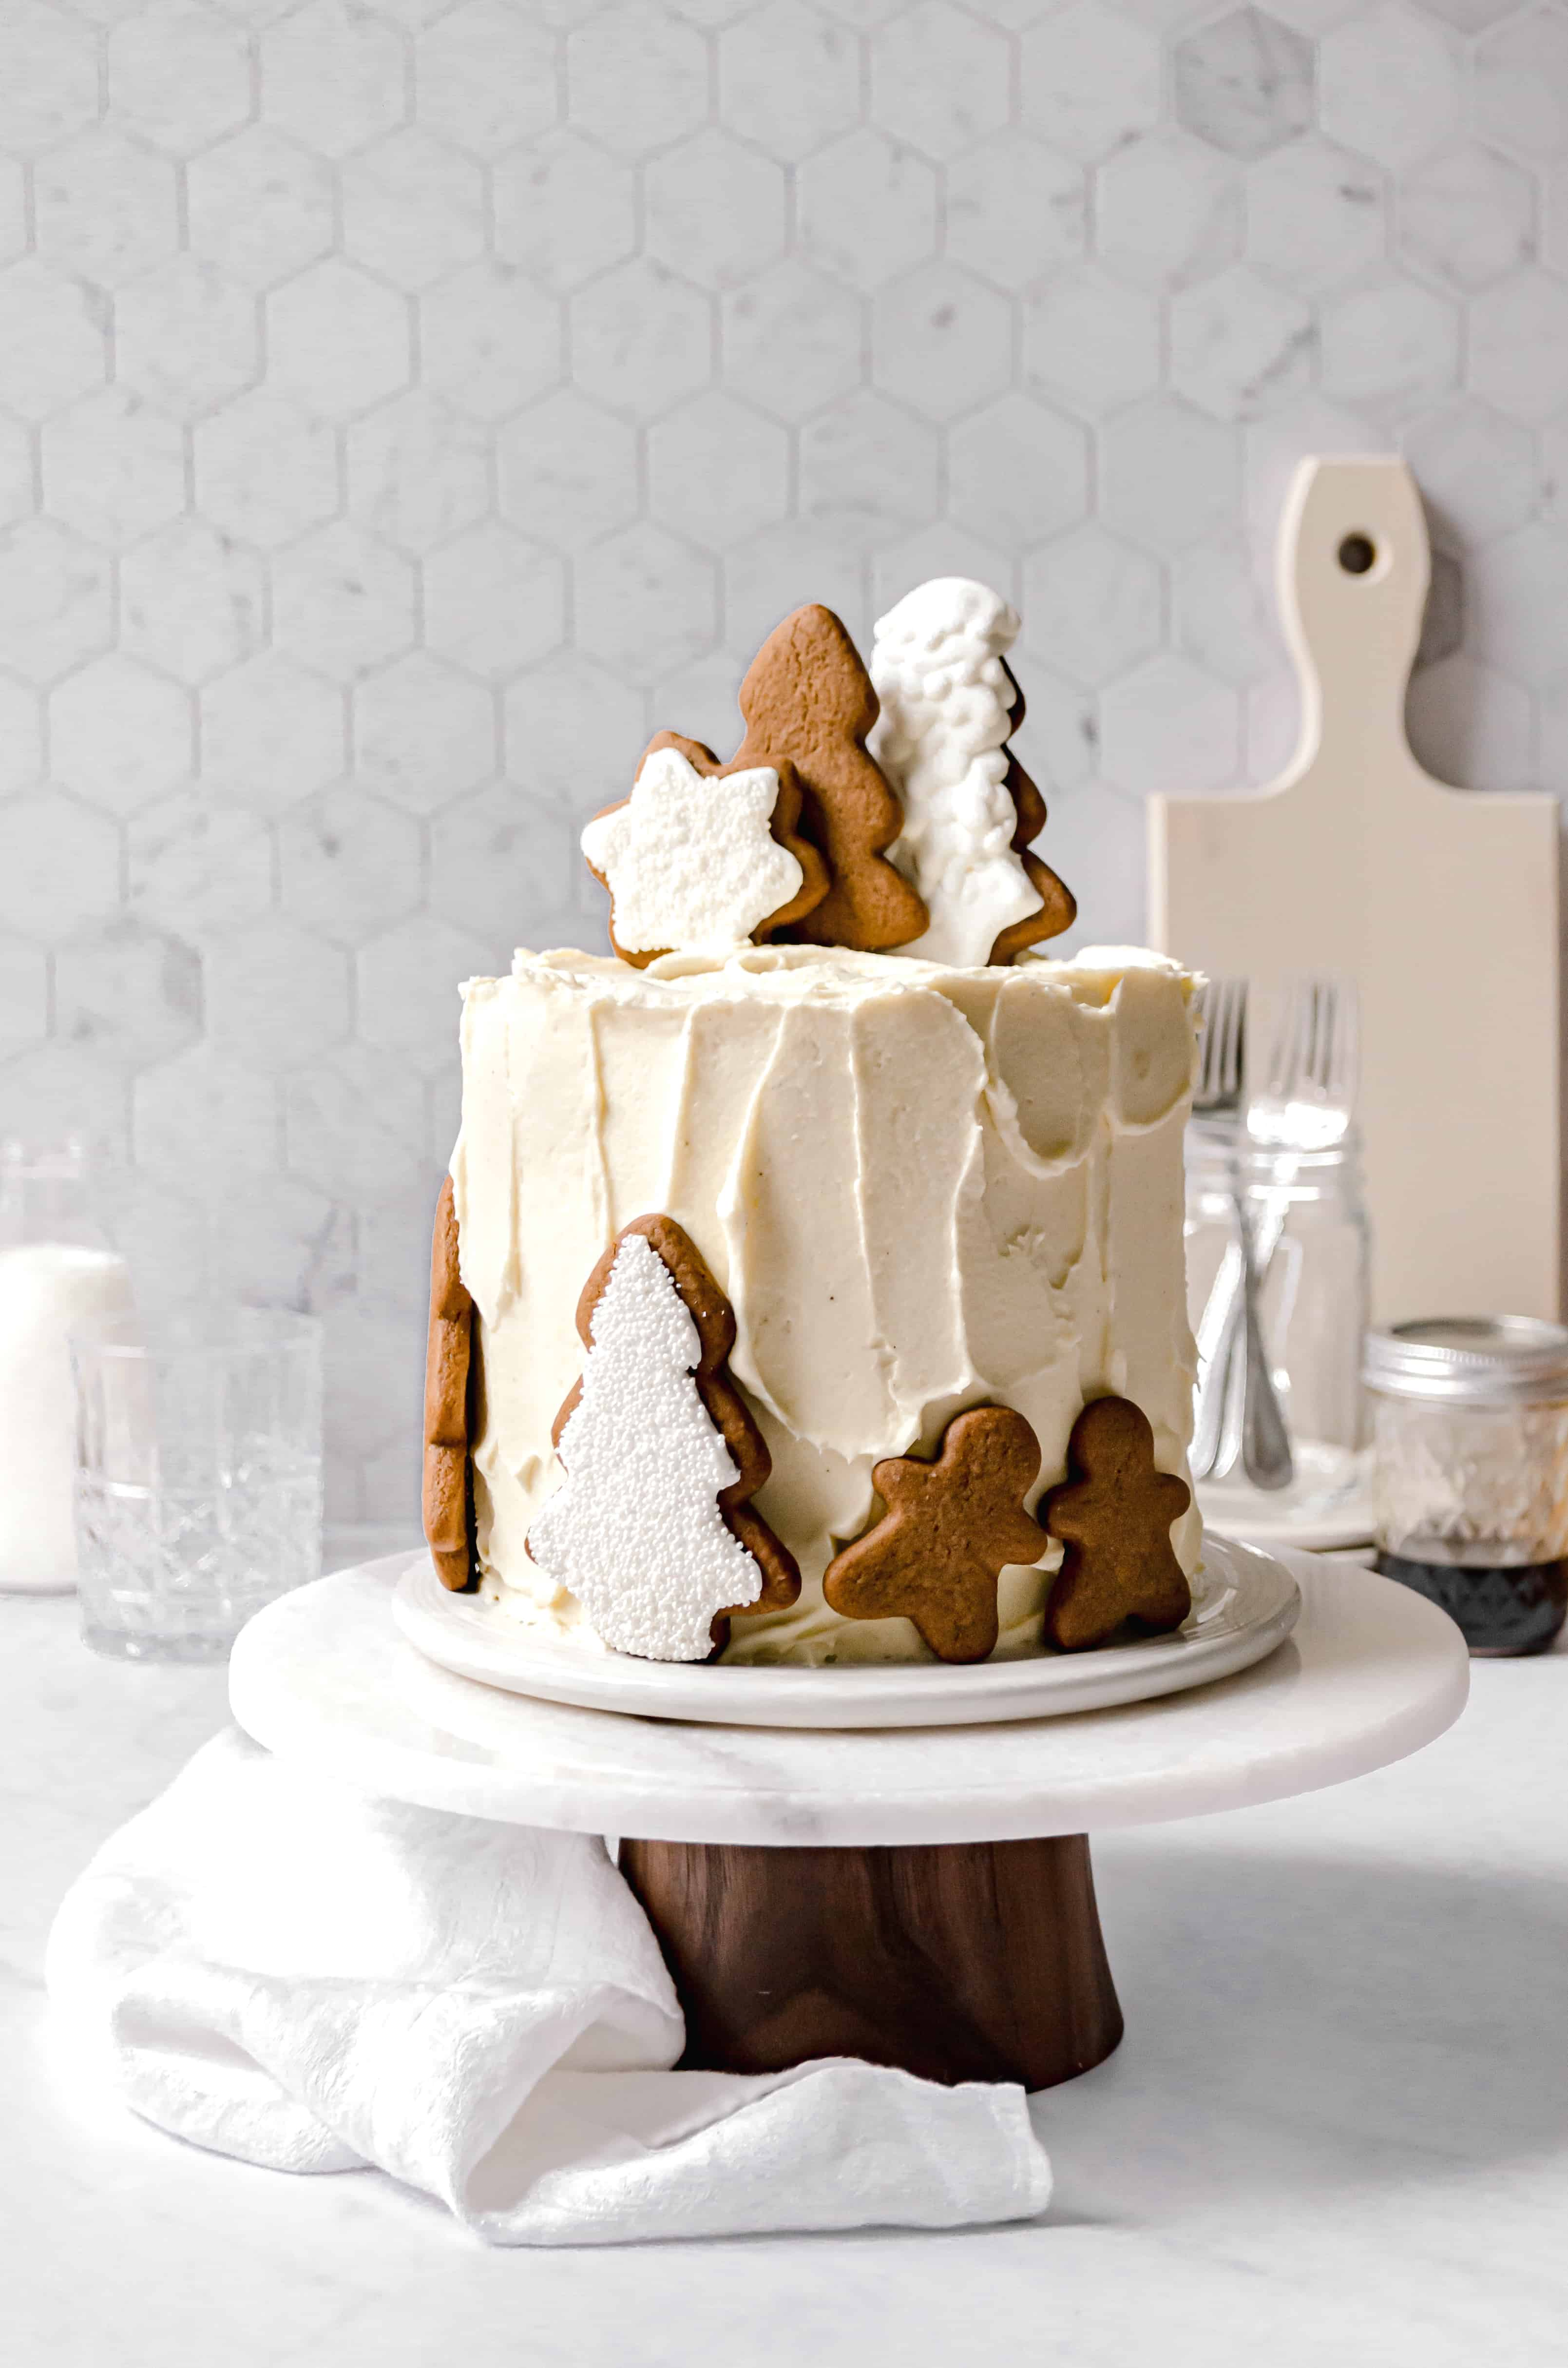 gingerbread layer cake with gingerbread cookies on top